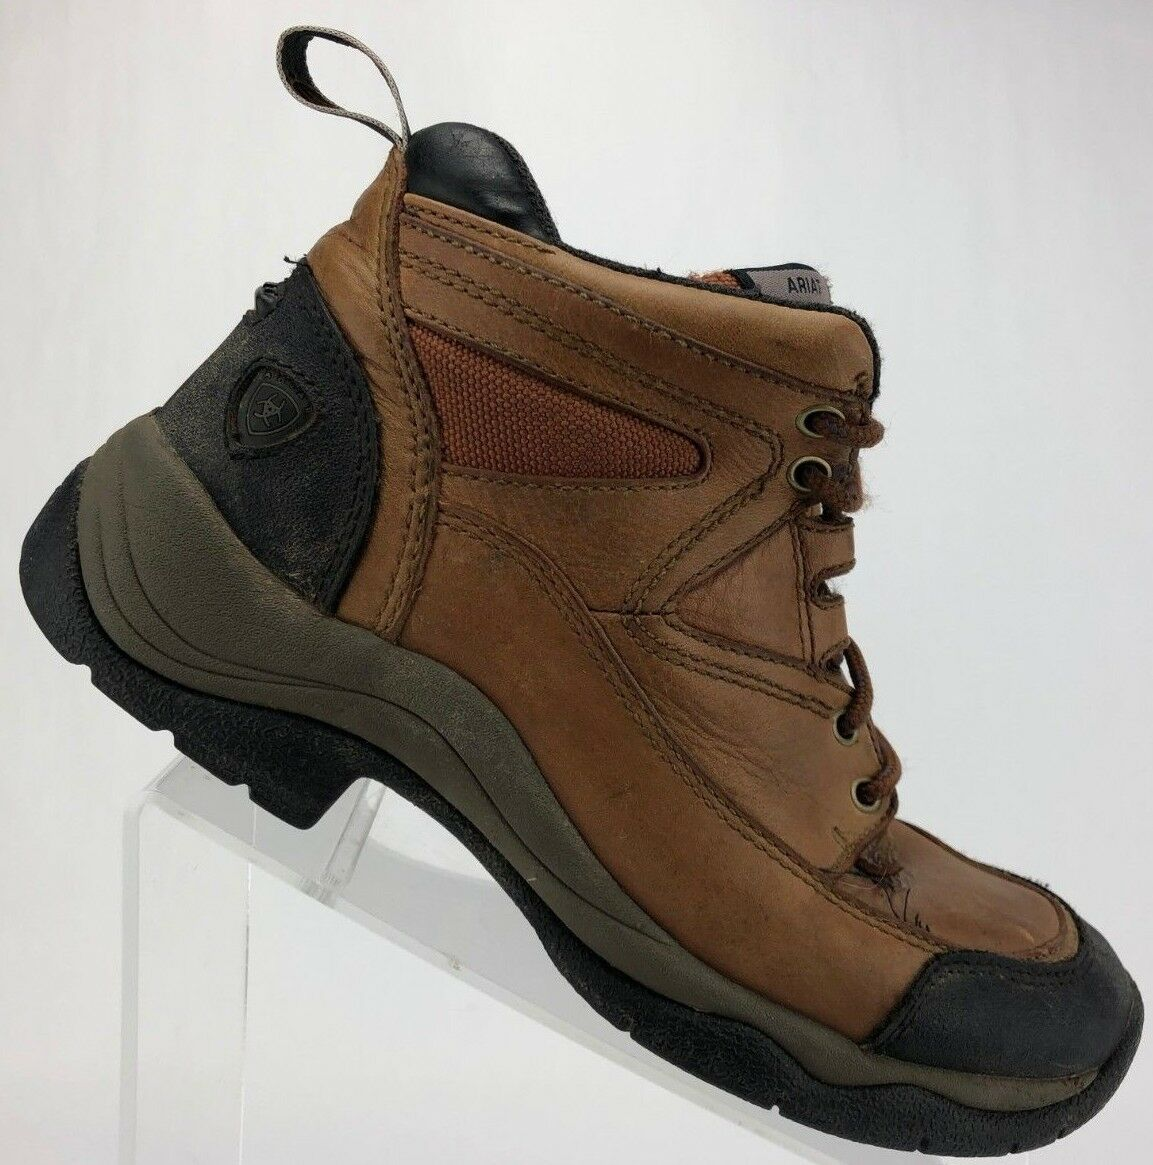 Ariat Ankle Boots ATS Sunshine Terrain Hiking Endurance shoes Womens 7.5 B Brown